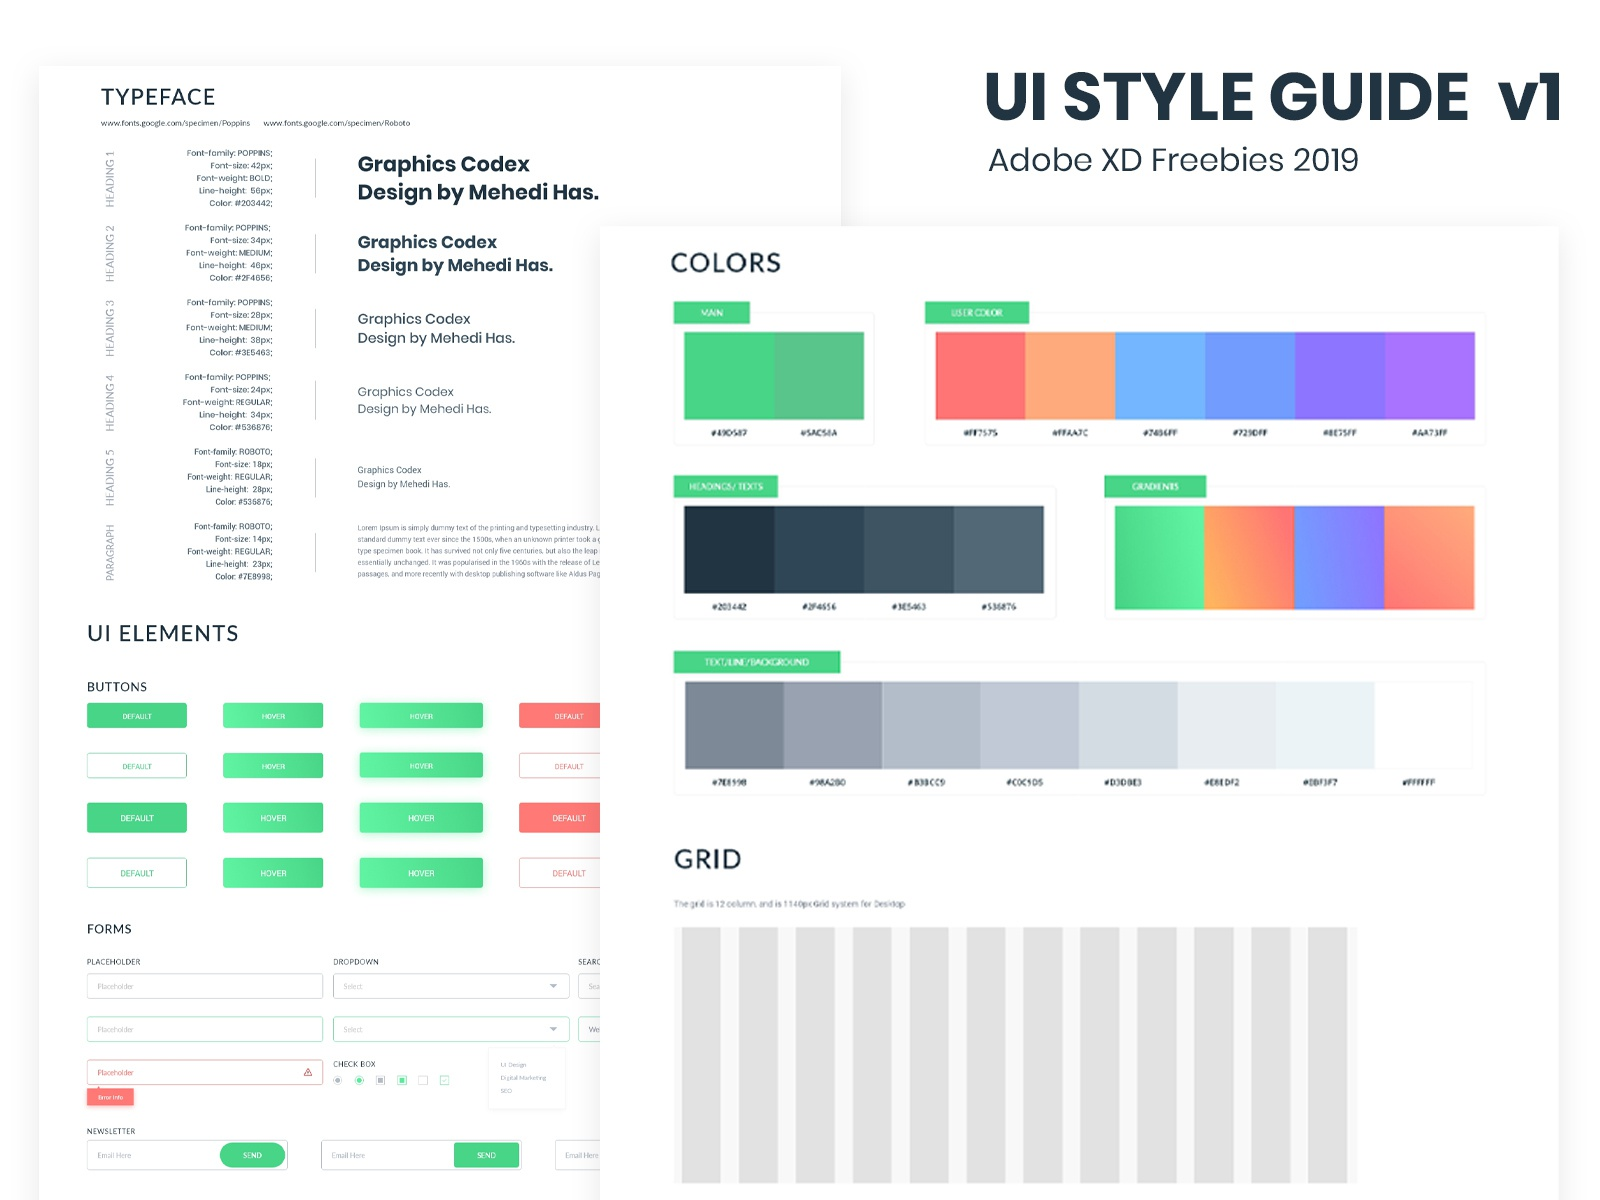 Creative UI Style Guide V1 (Adobe Xd Freebies) | Search by Muzli